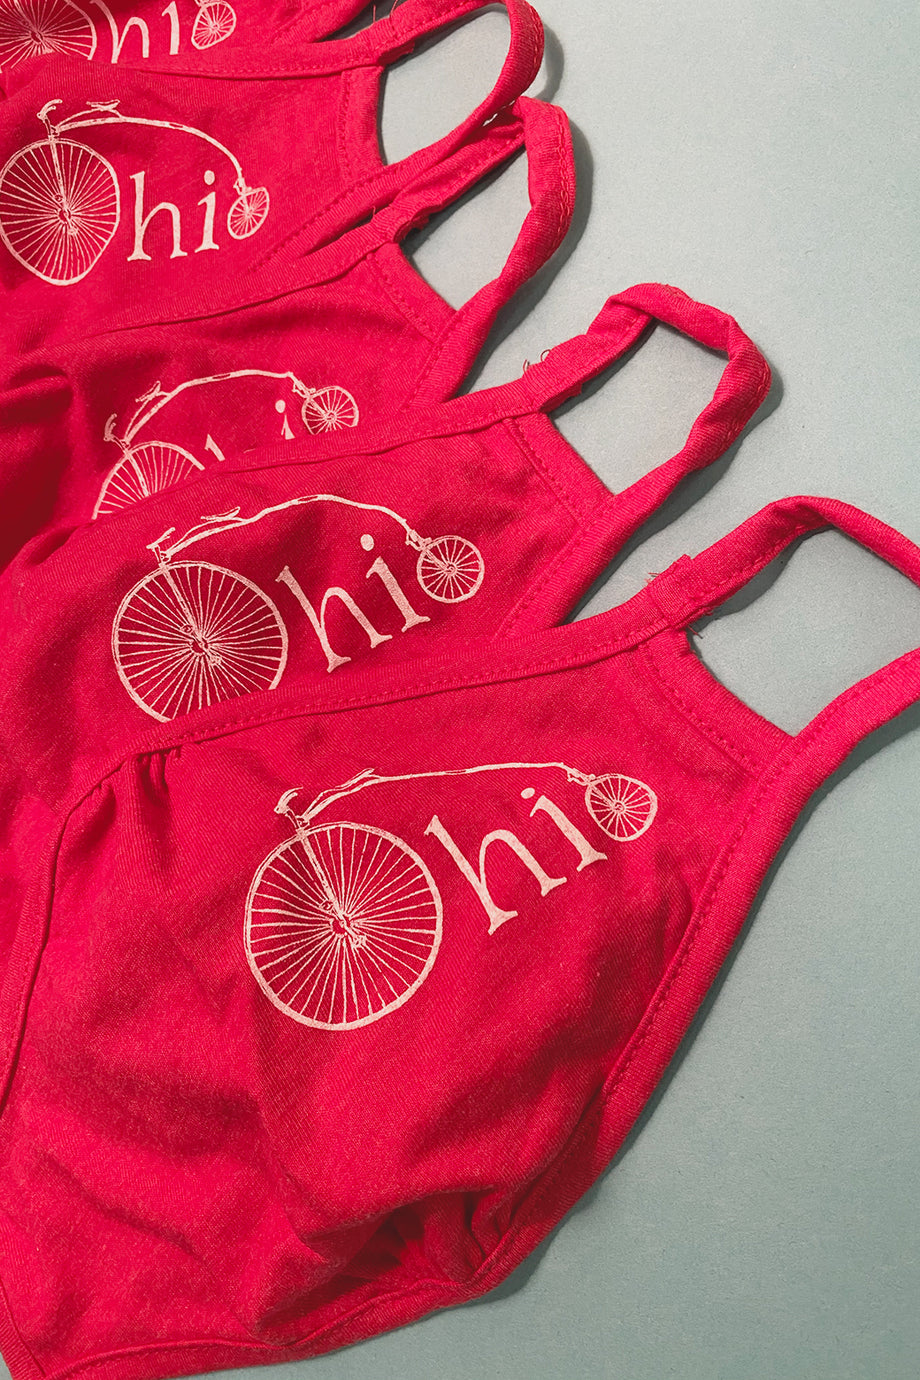 Ohio Bike Printed 2-ply Cloth Mask